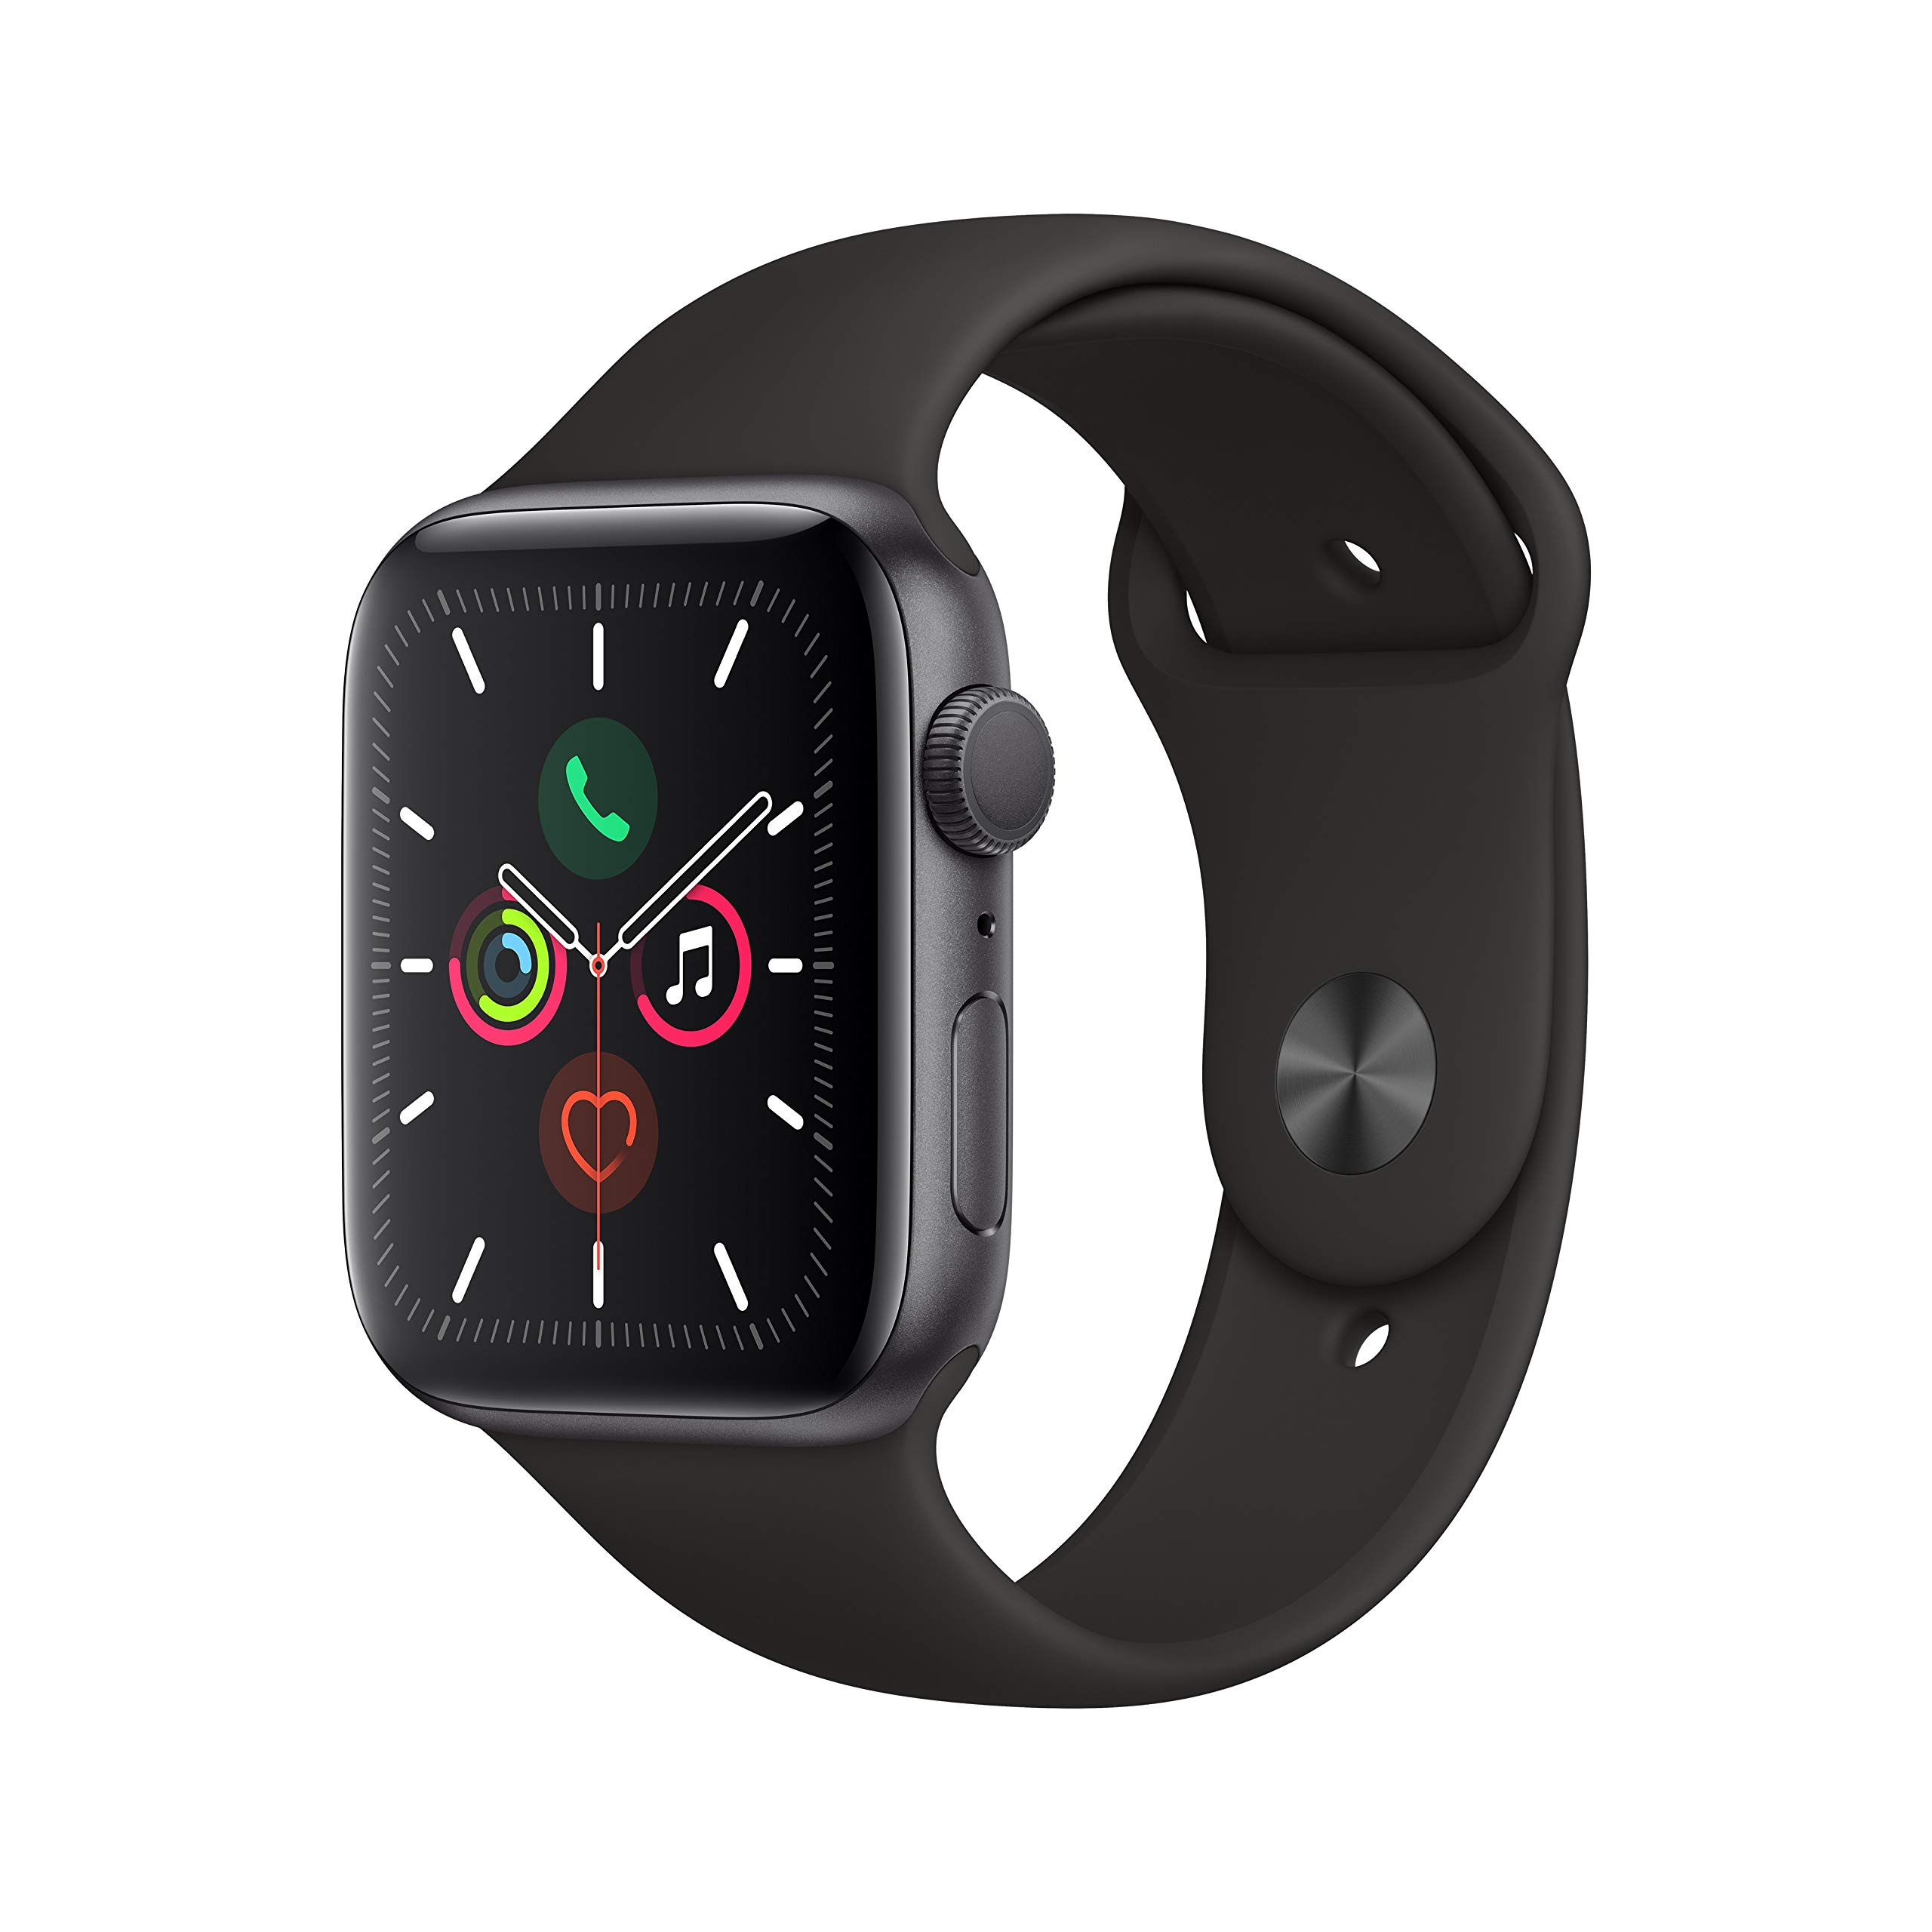 Apple Watch Series 5 (GPS, 44mm) - Space Gray Aluminum Case with Black Sport Band by Apple